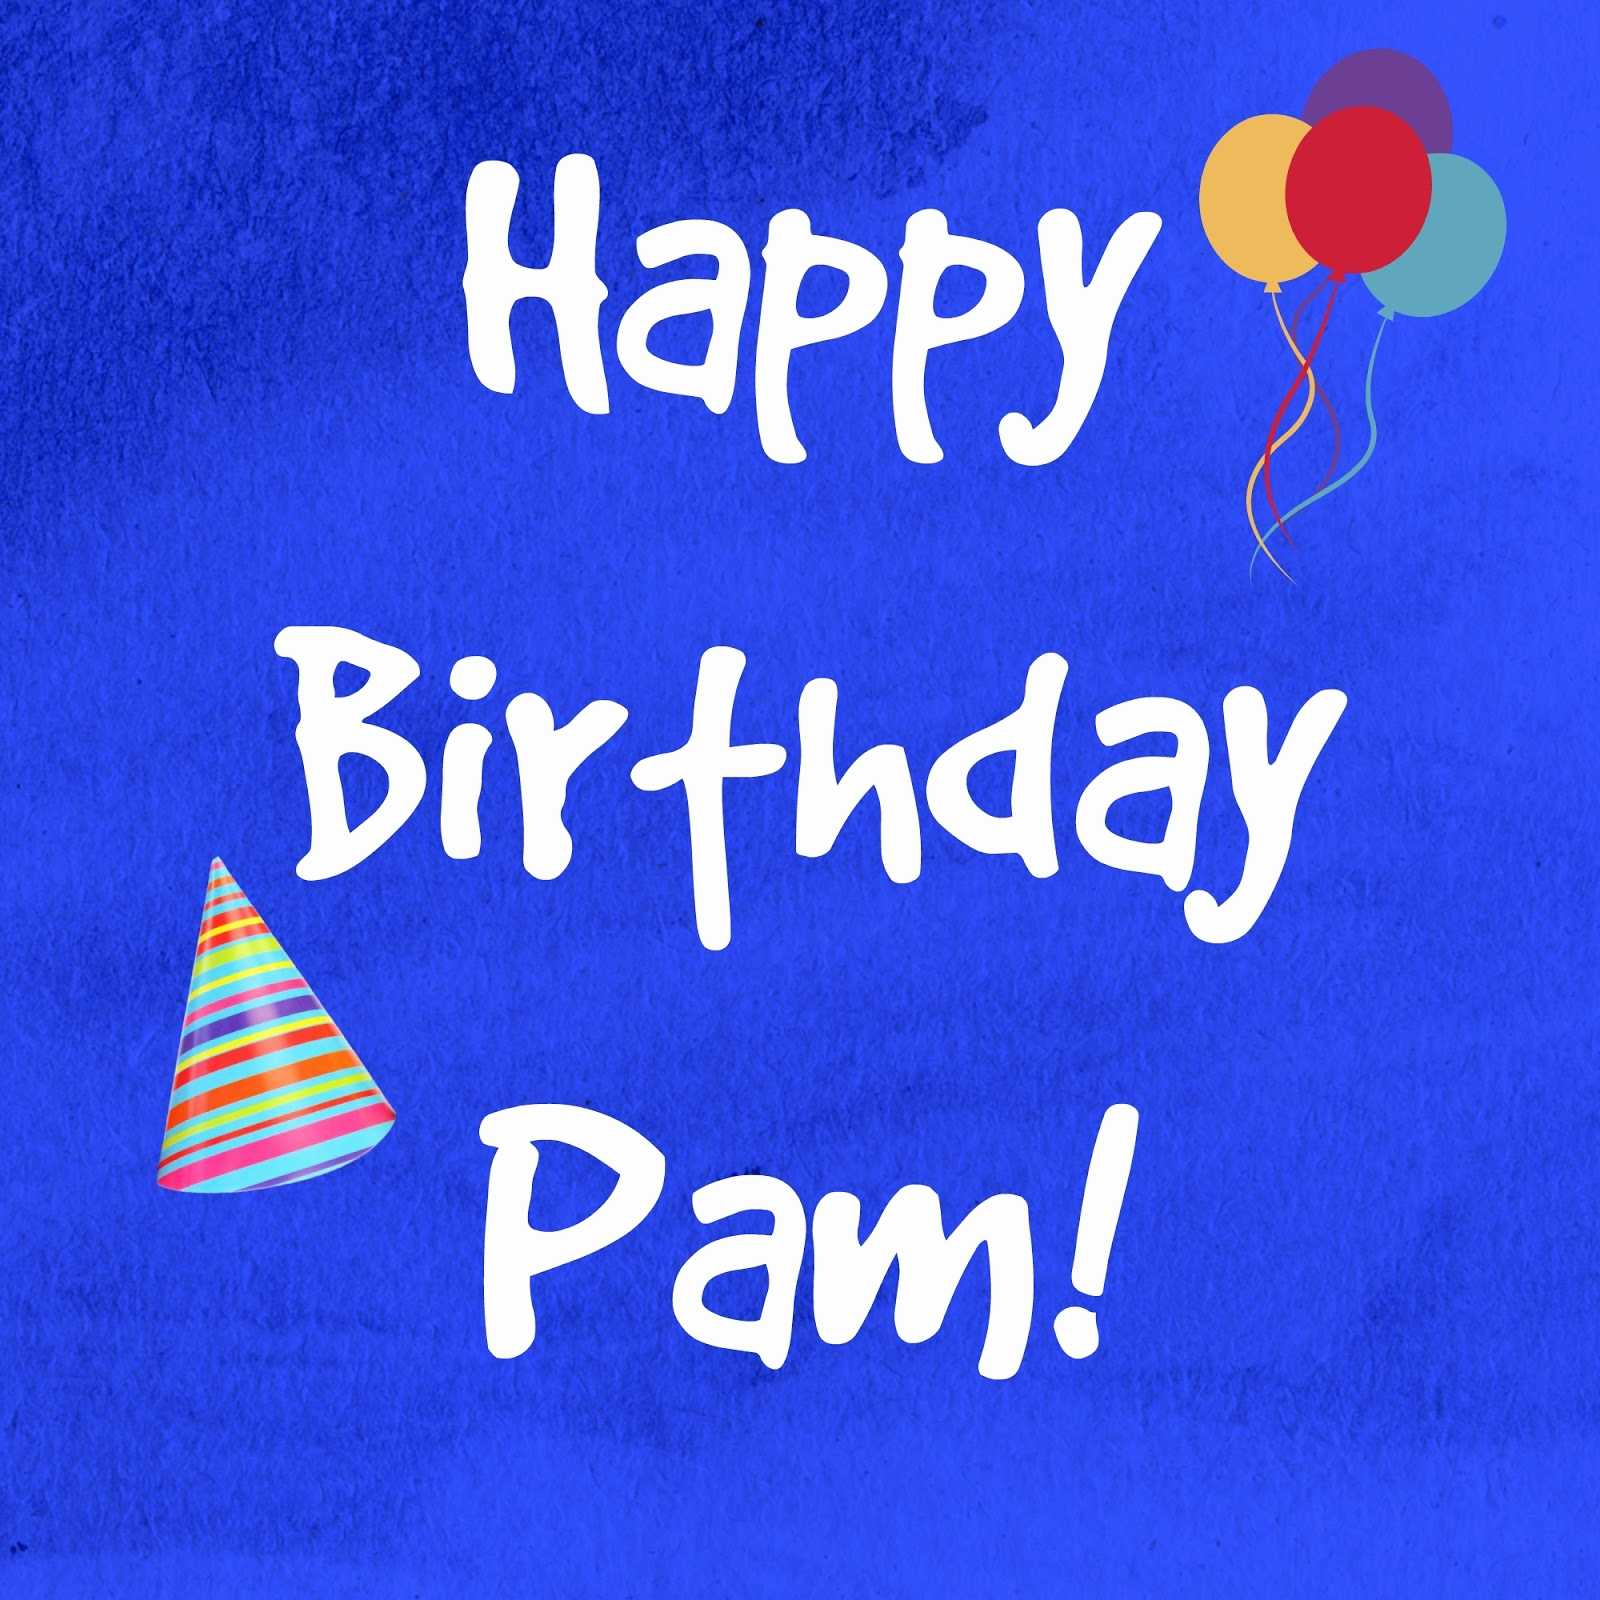 happy birthday pam images ; happy-birthday-pam-images-elegant-rolling-acres-farm-hunter-jumper-horse-boarding-sales-of-happy-birthday-pam-images